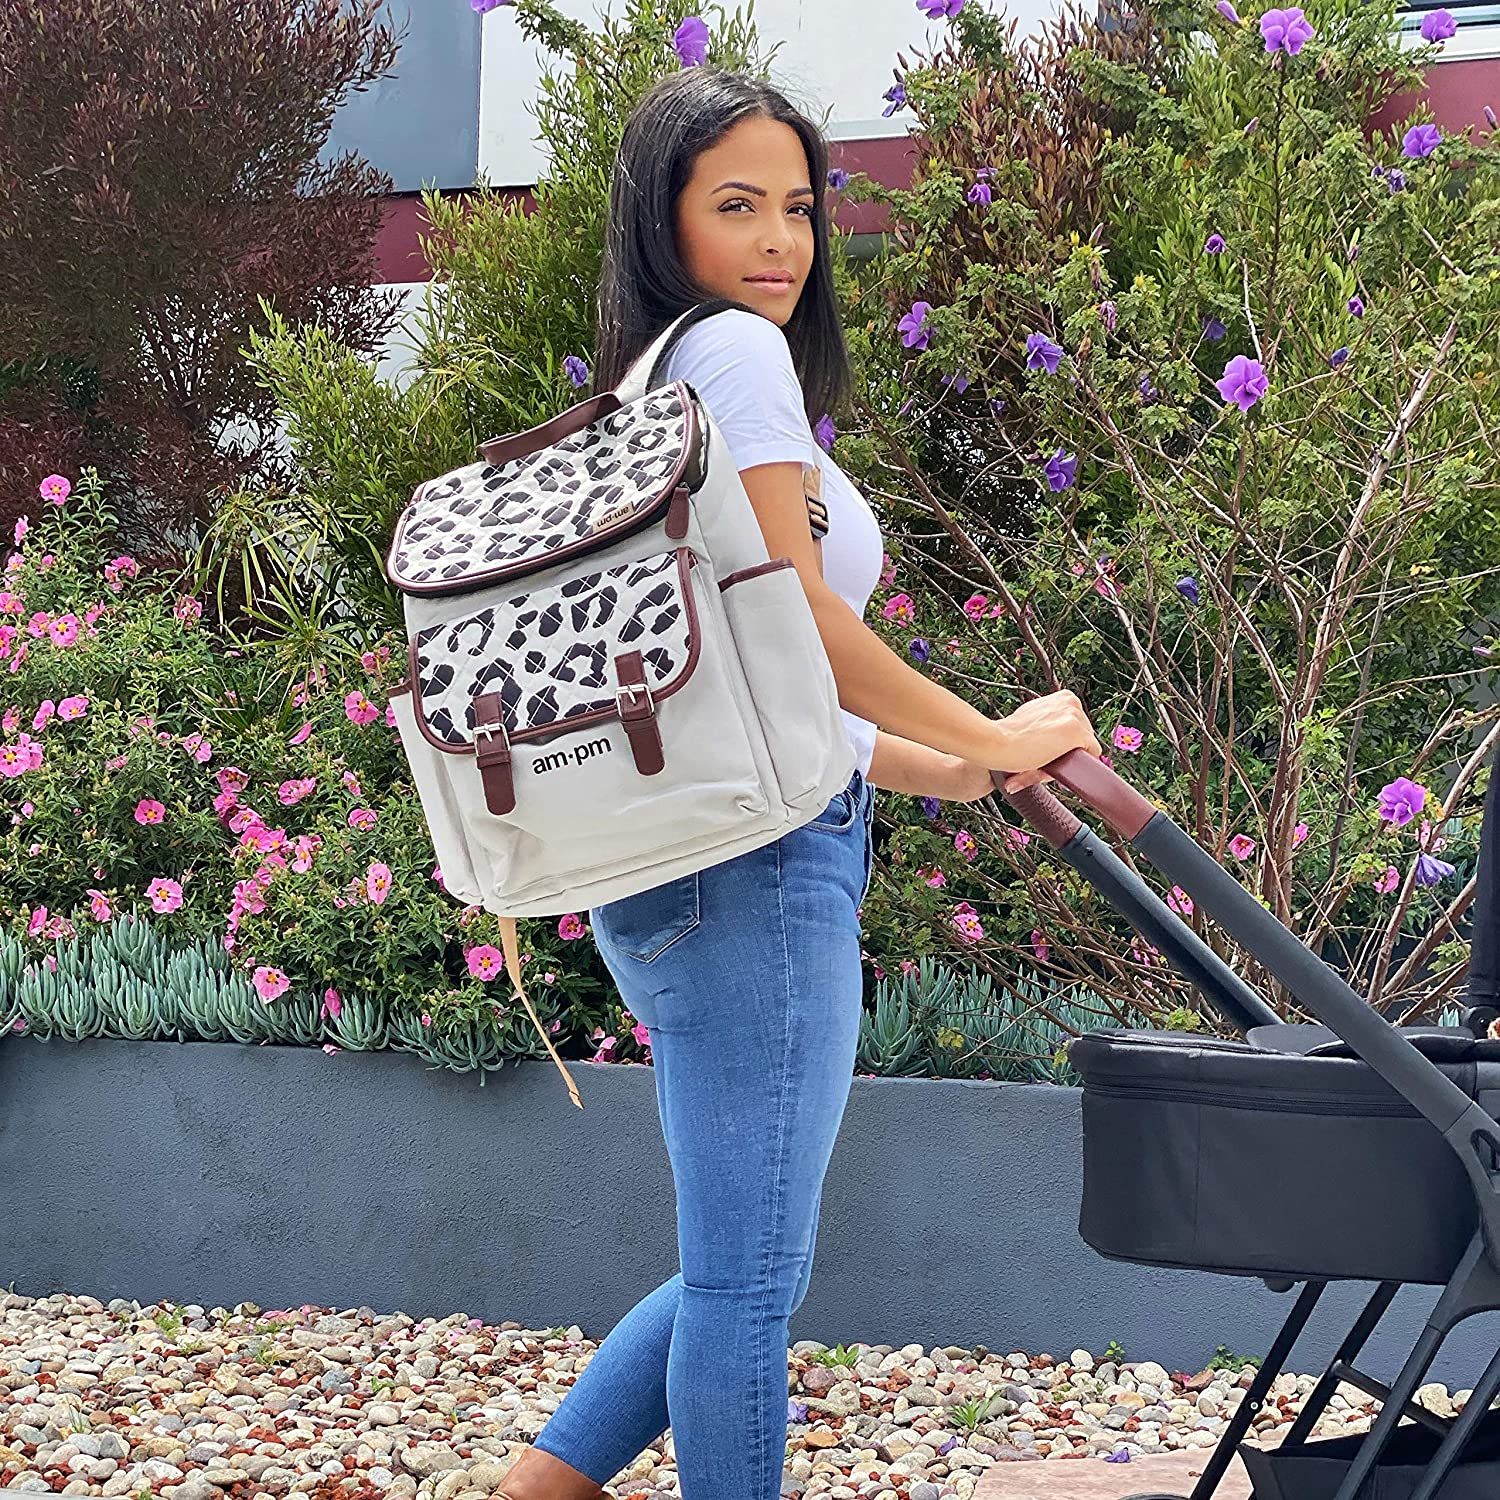 Large Pocket at The Front with 2 Side Pockets Insulated Bottle Holder My Babiie AMPM by Christina Milian Leopard Backpack Changing Bag Adjustable Straps with Padded Changing Mat